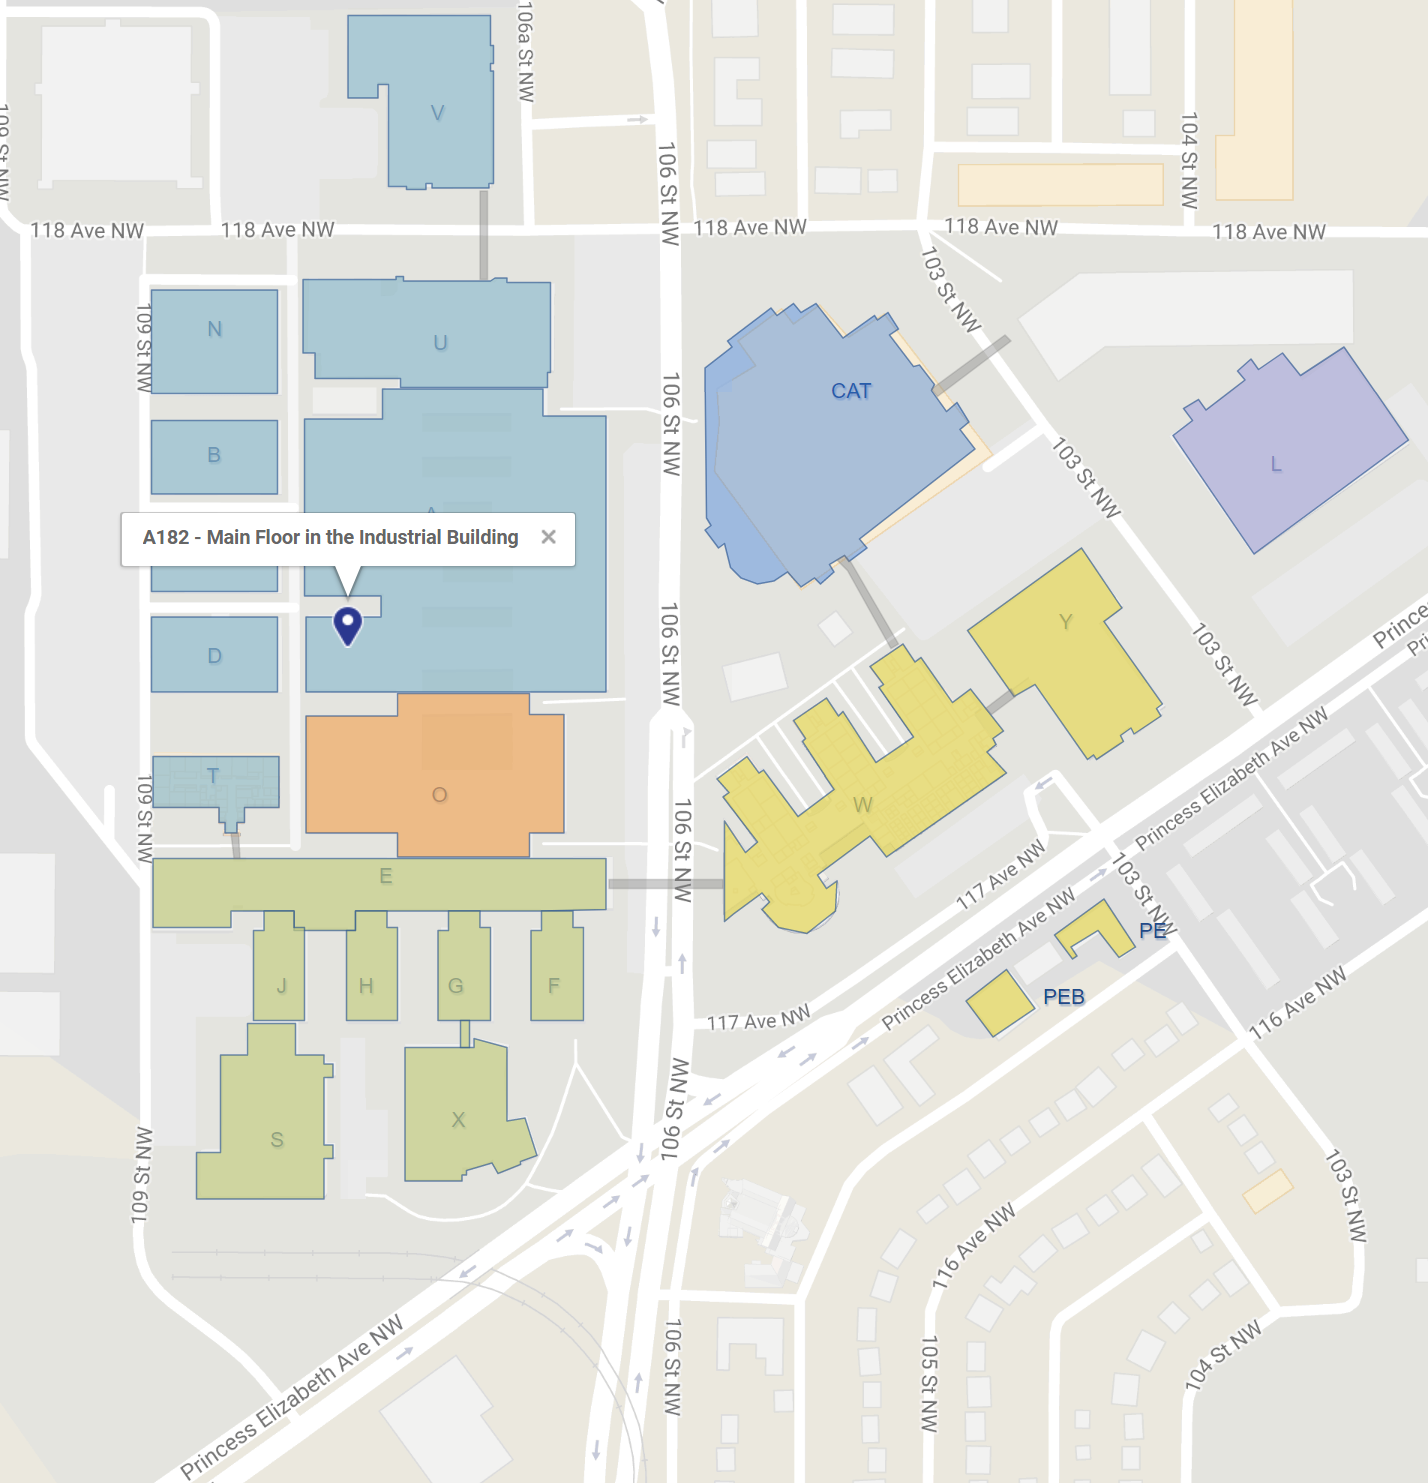 NAIT Campus Map